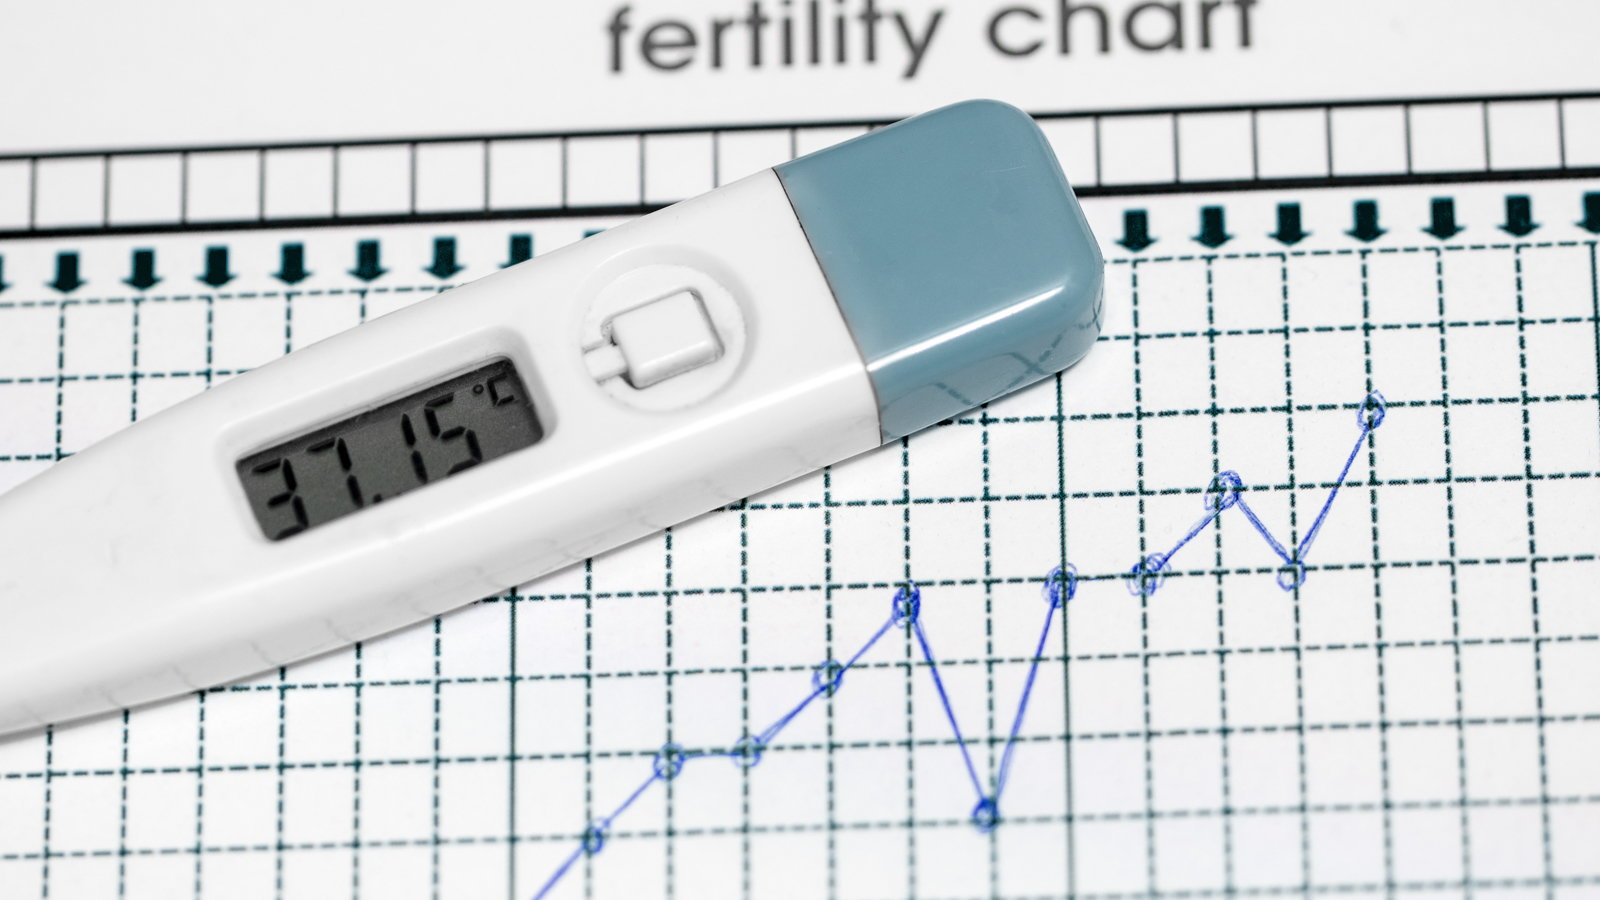 fertility chart showing ovulation